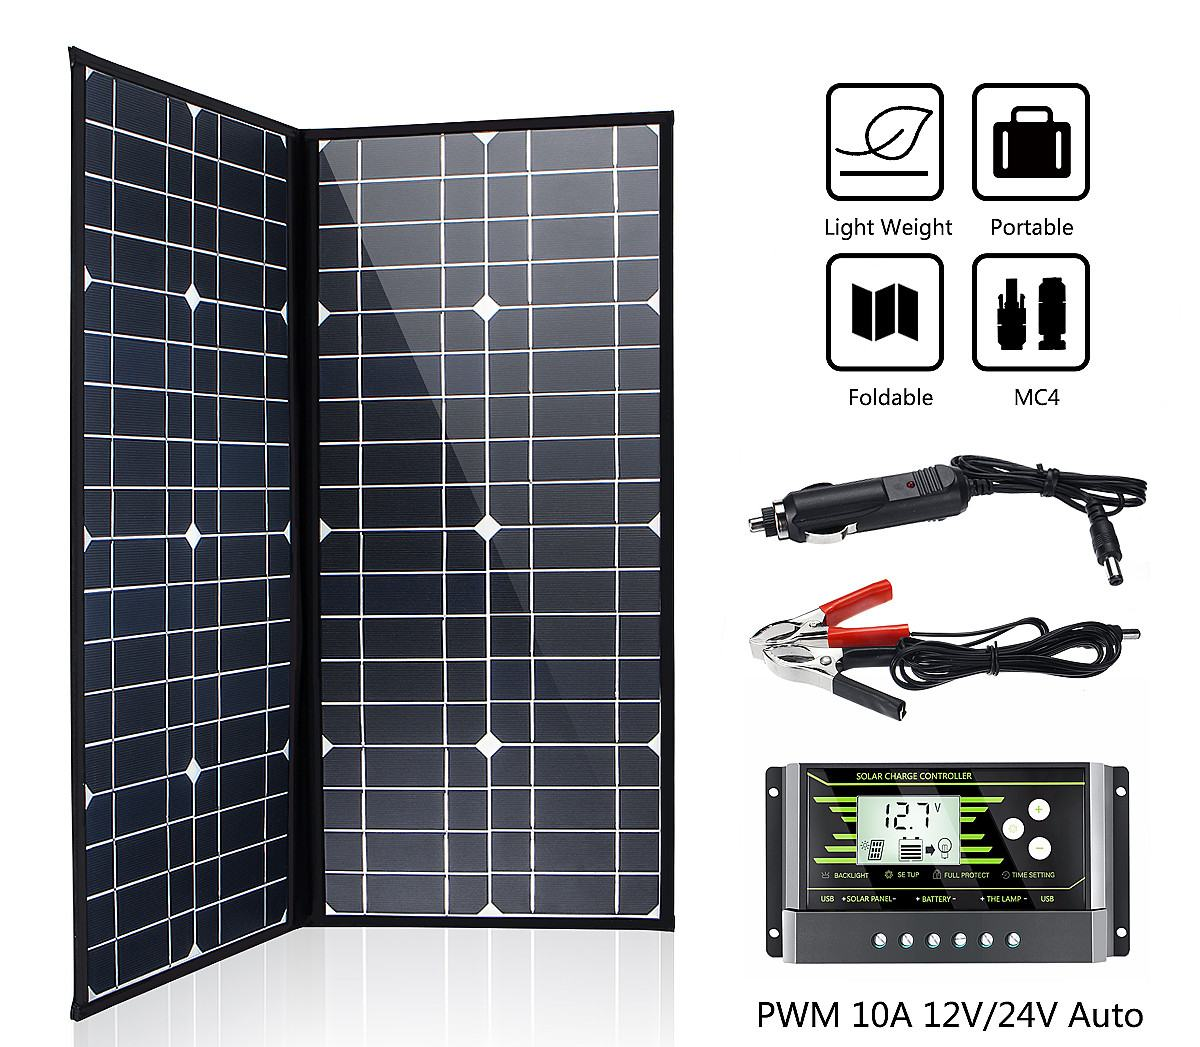 LEORY Brand 60W 21 <font><b>Volt</b></font> <font><b>Solar</b></font> Panel China Cell/Module/System Charger/<font><b>Battery</b></font> + 10A <font><b>12</b></font>/24 <font><b>Volt</b></font> Controller 60 Watt <font><b>Solar</b></font> Panels image